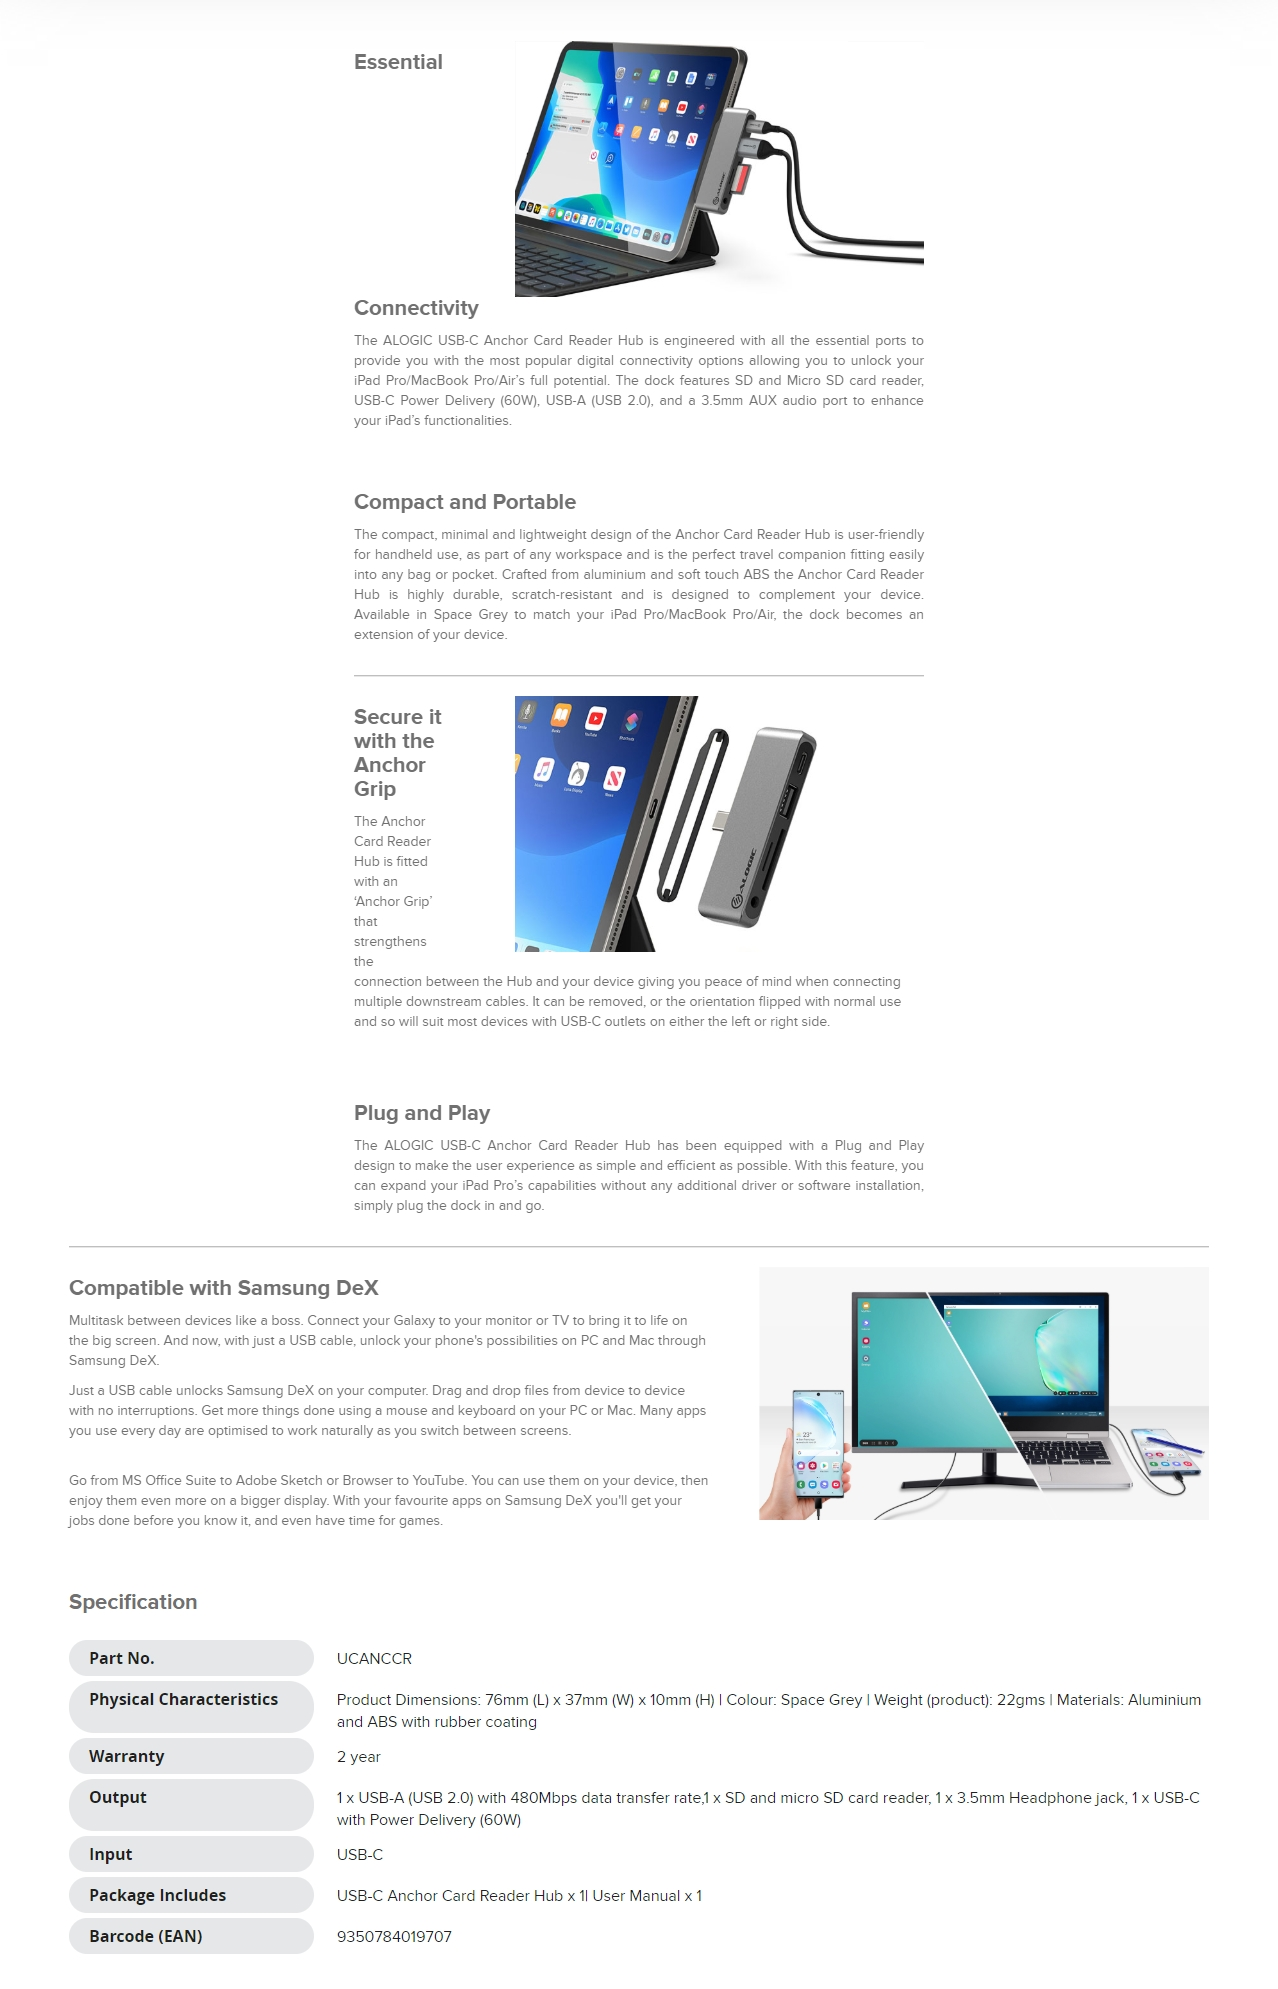 A large marketing image providing additional information about the product ALOGIC USB-C Anchor 5-in-1 Card Reader Hub - Additional alt info not provided